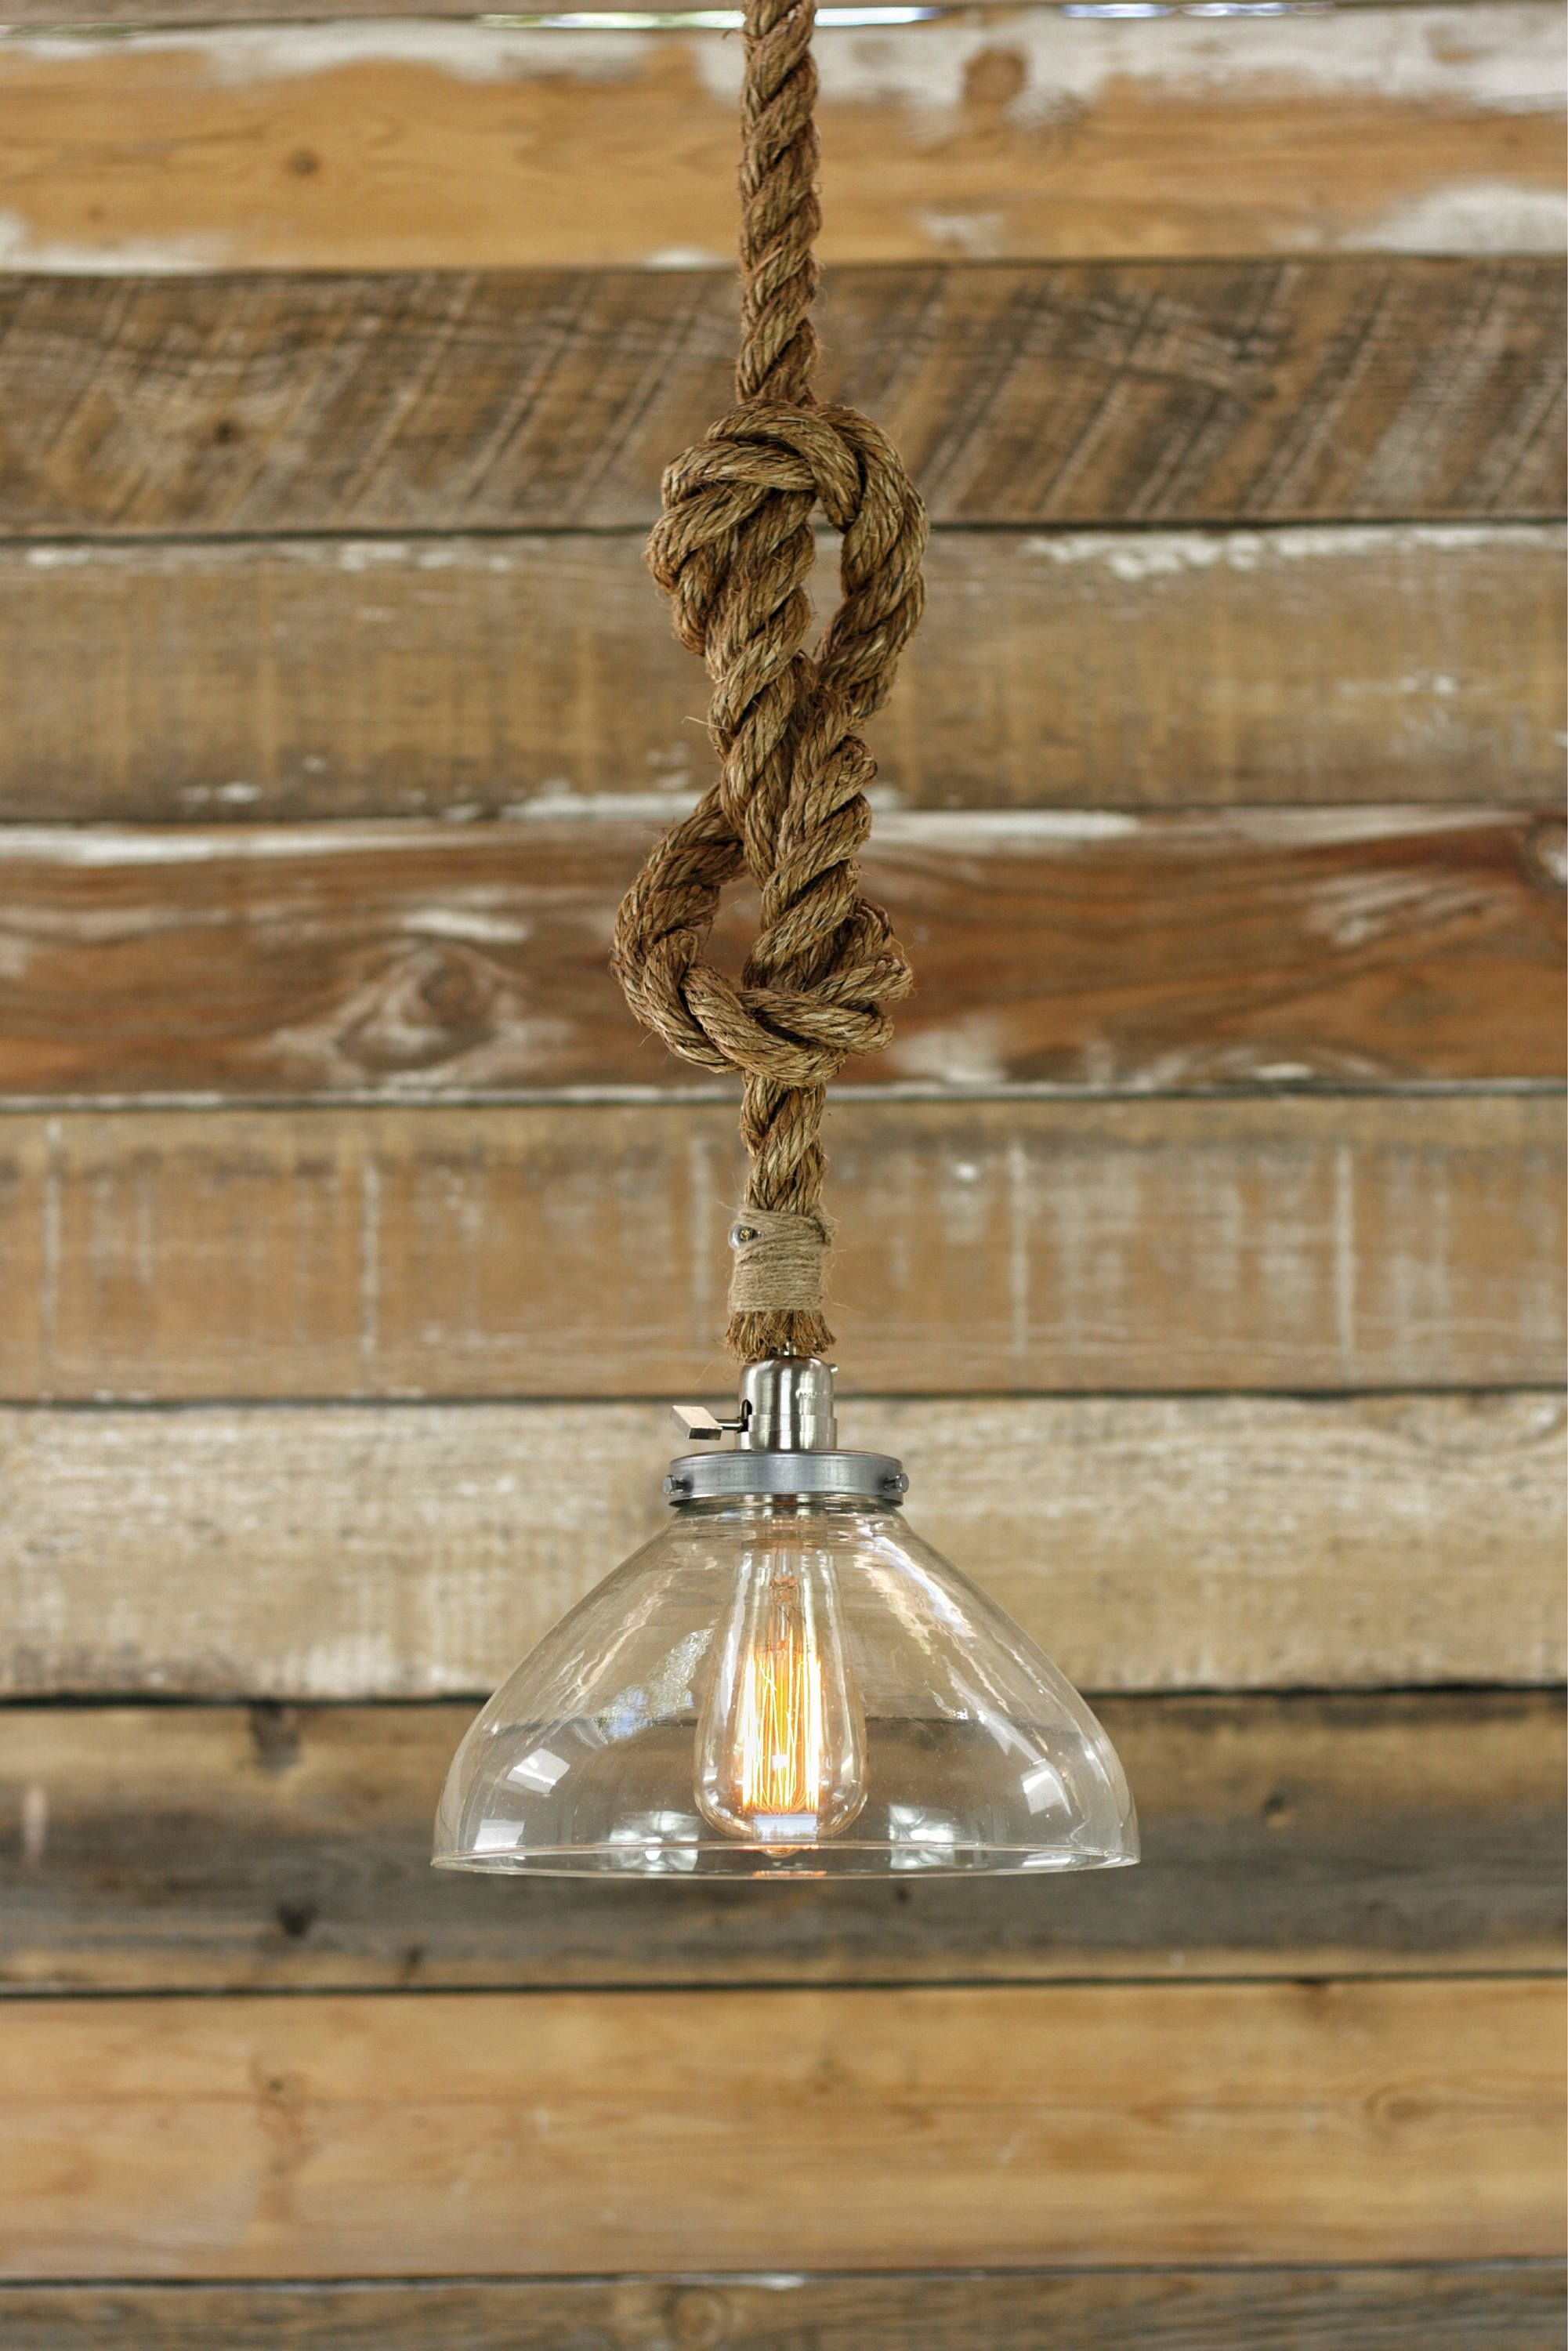 The snowfall pendant light industrial rope light fixture modern manila rope aloadofball Choice Image